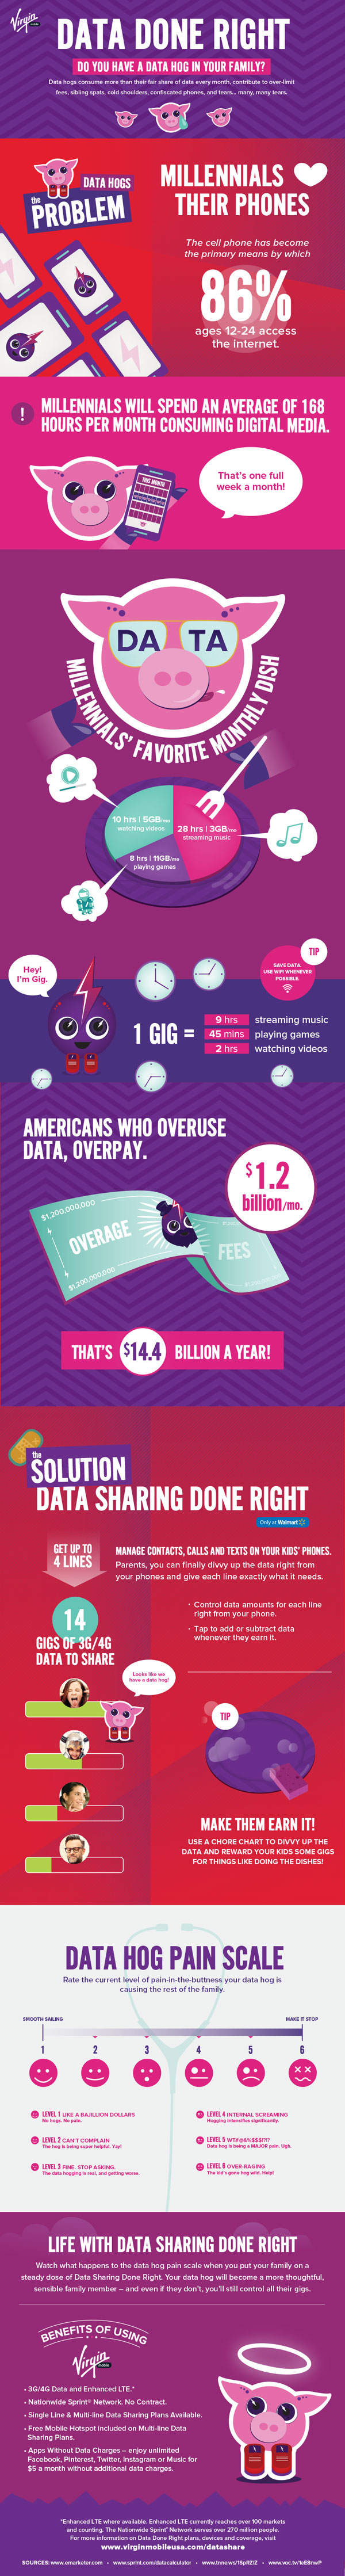 Virgin Mobile Data Hog Infographic #sprintmom #datadoneright